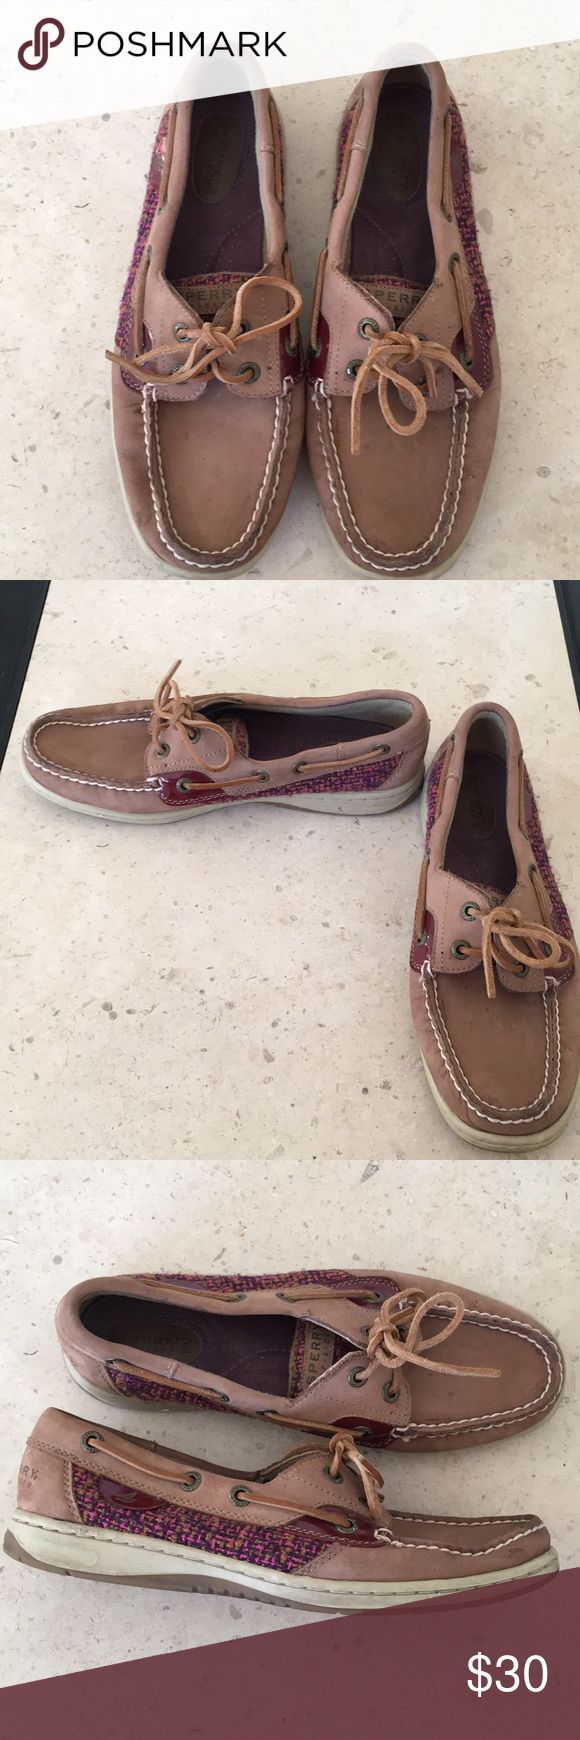 Sperry Topsider with Maroon Purple Pink Tweed Reasonable offers are gladly accepted! Items from smoke and pet free home Fast same or next day shipping Any flaws are noted in description/photos Packaging recycled/reused-please recycle Please reach out with any questions! Like/follow for frequent sales/new inventory Thank you for visiting my closet! Sperry Shoes Flats & Loafers